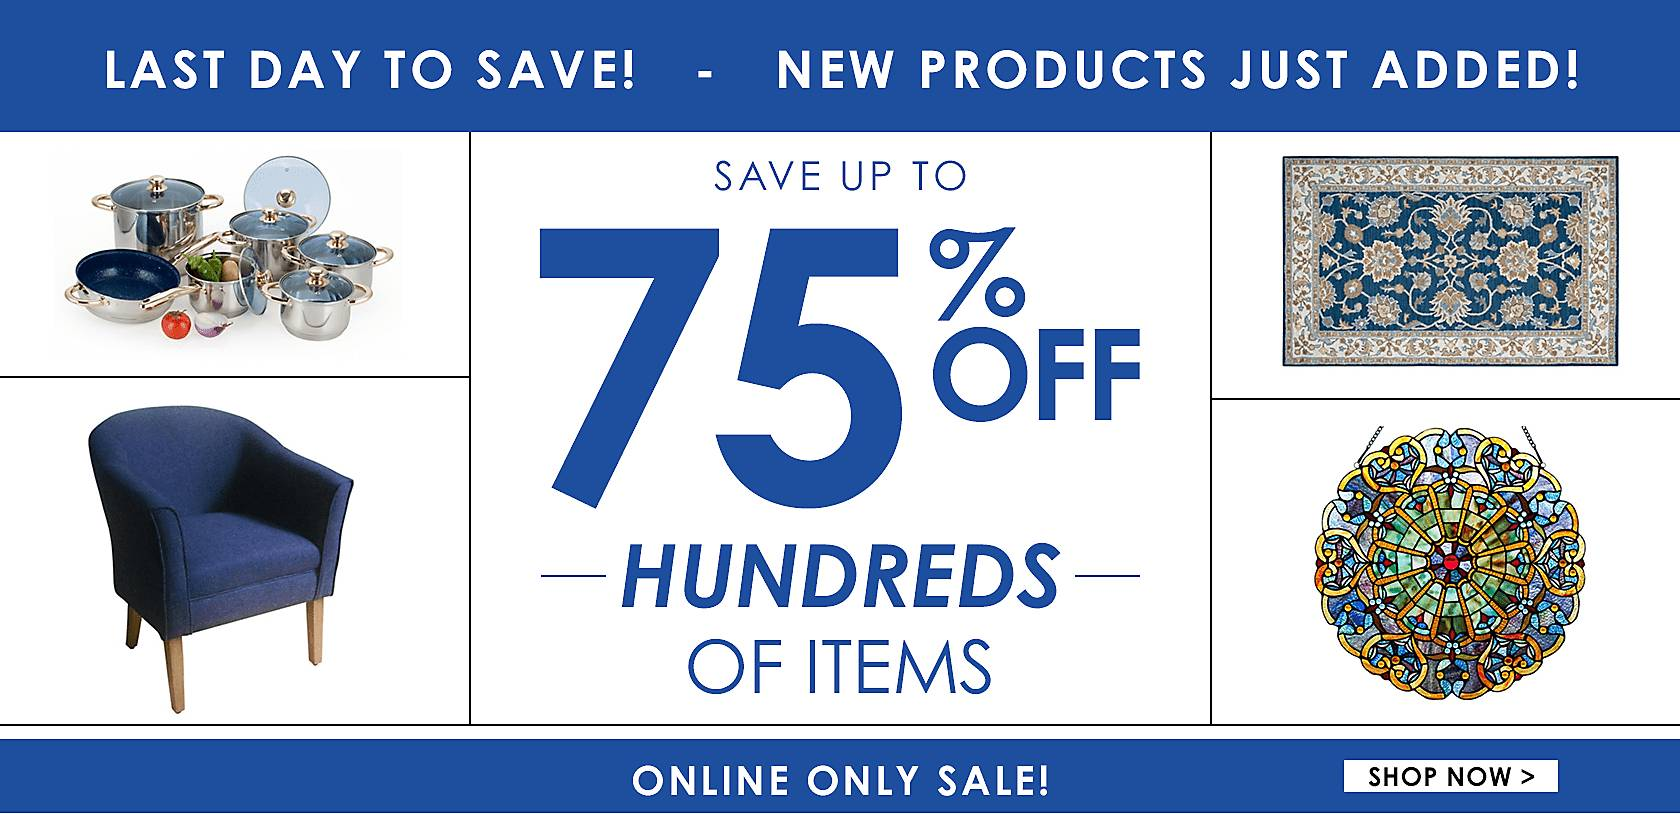 Last day to save! Online Only! Save up to 75% off on hundreds of items! New products just added - Shop Now